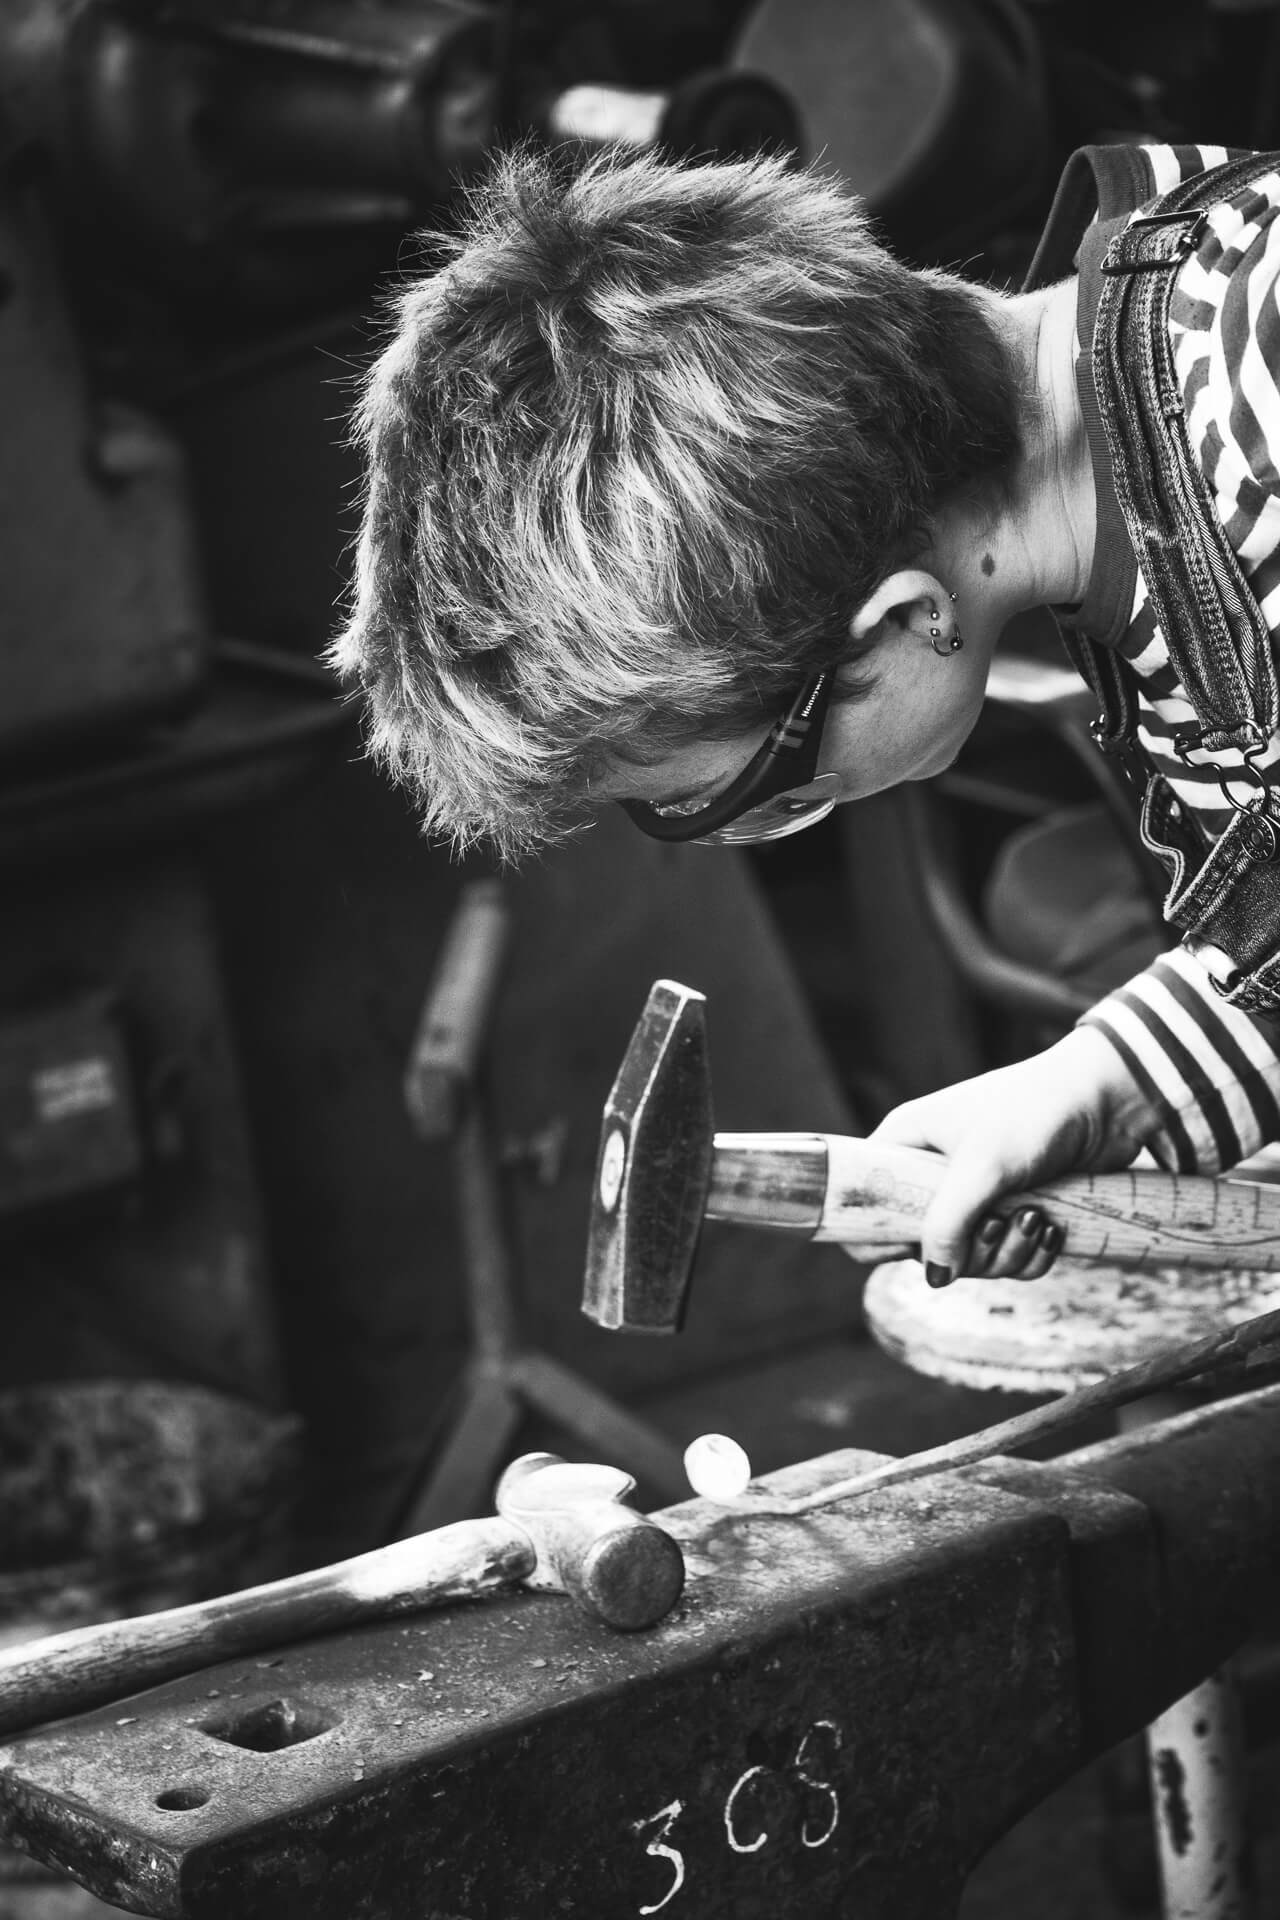 A close up black & white image of female blacksmith working red hot metal at a traditional anvil with a traditional blacksmiths hammer. She wears dungarees & protective glasses. She has very short spikes hair and strangely, painted nails!